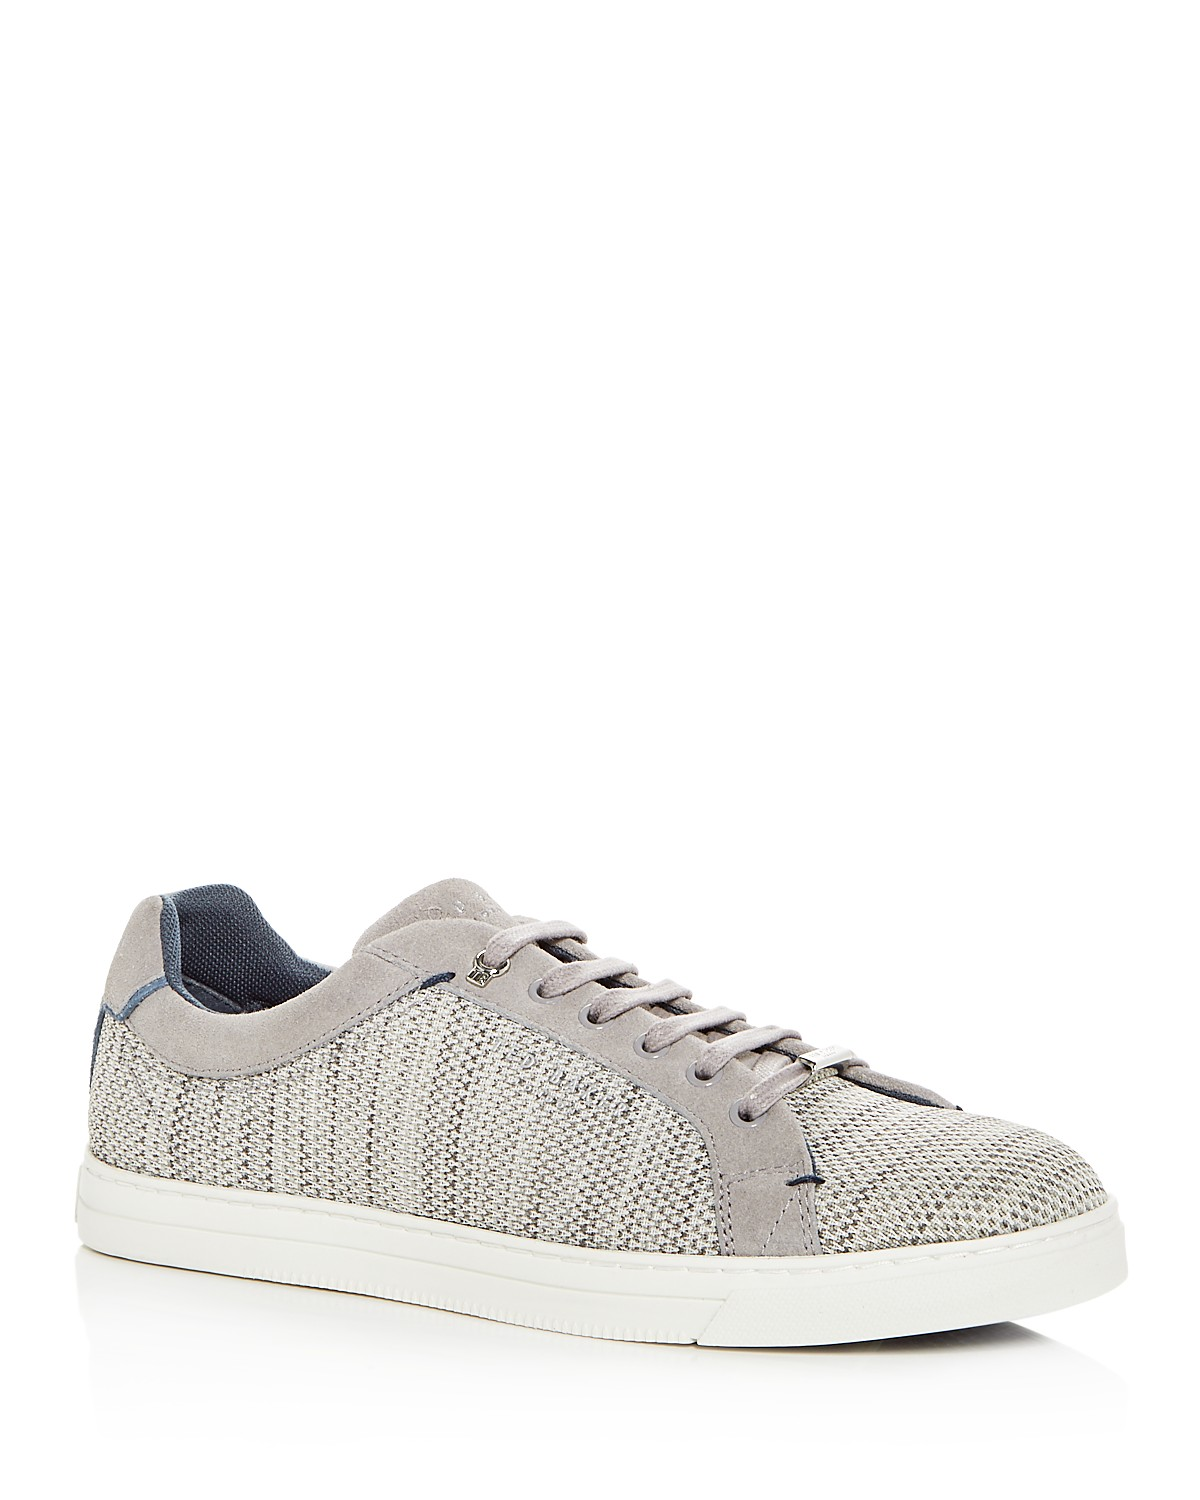 Ted Baker Men's Demes Lace Up Sneakers